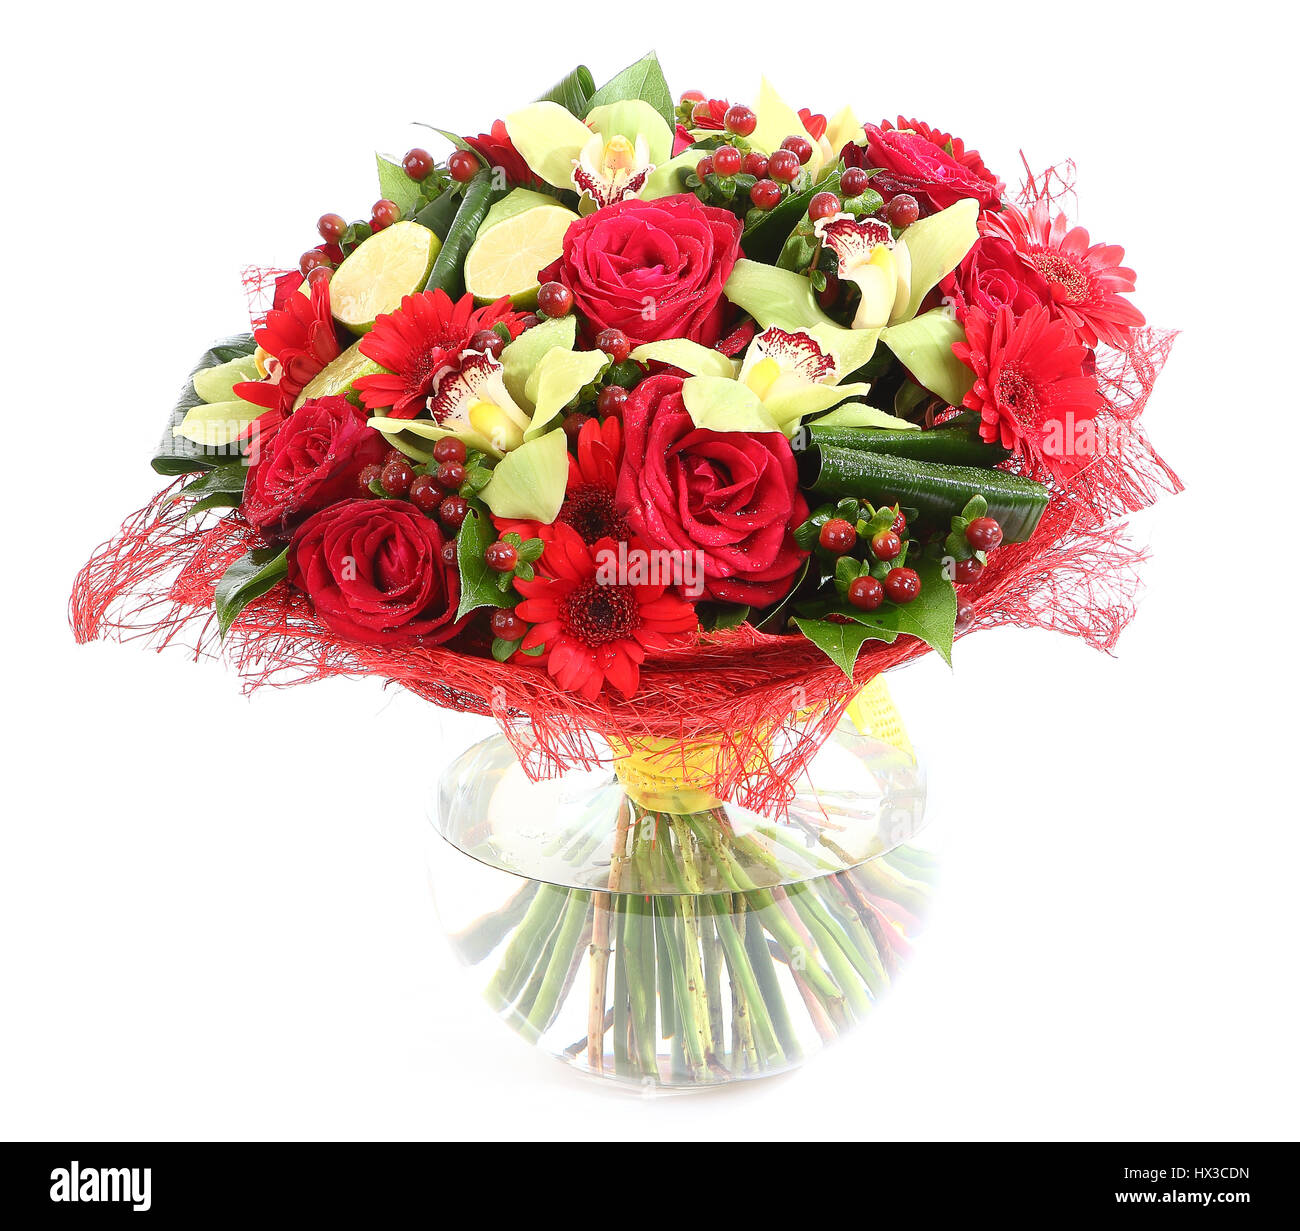 Flower arrangement in glass transparent vase red roses orchids flower arrangement in glass transparent vase red roses orchids red gerbera daisies isolated on white background floristic composition design a reviewsmspy